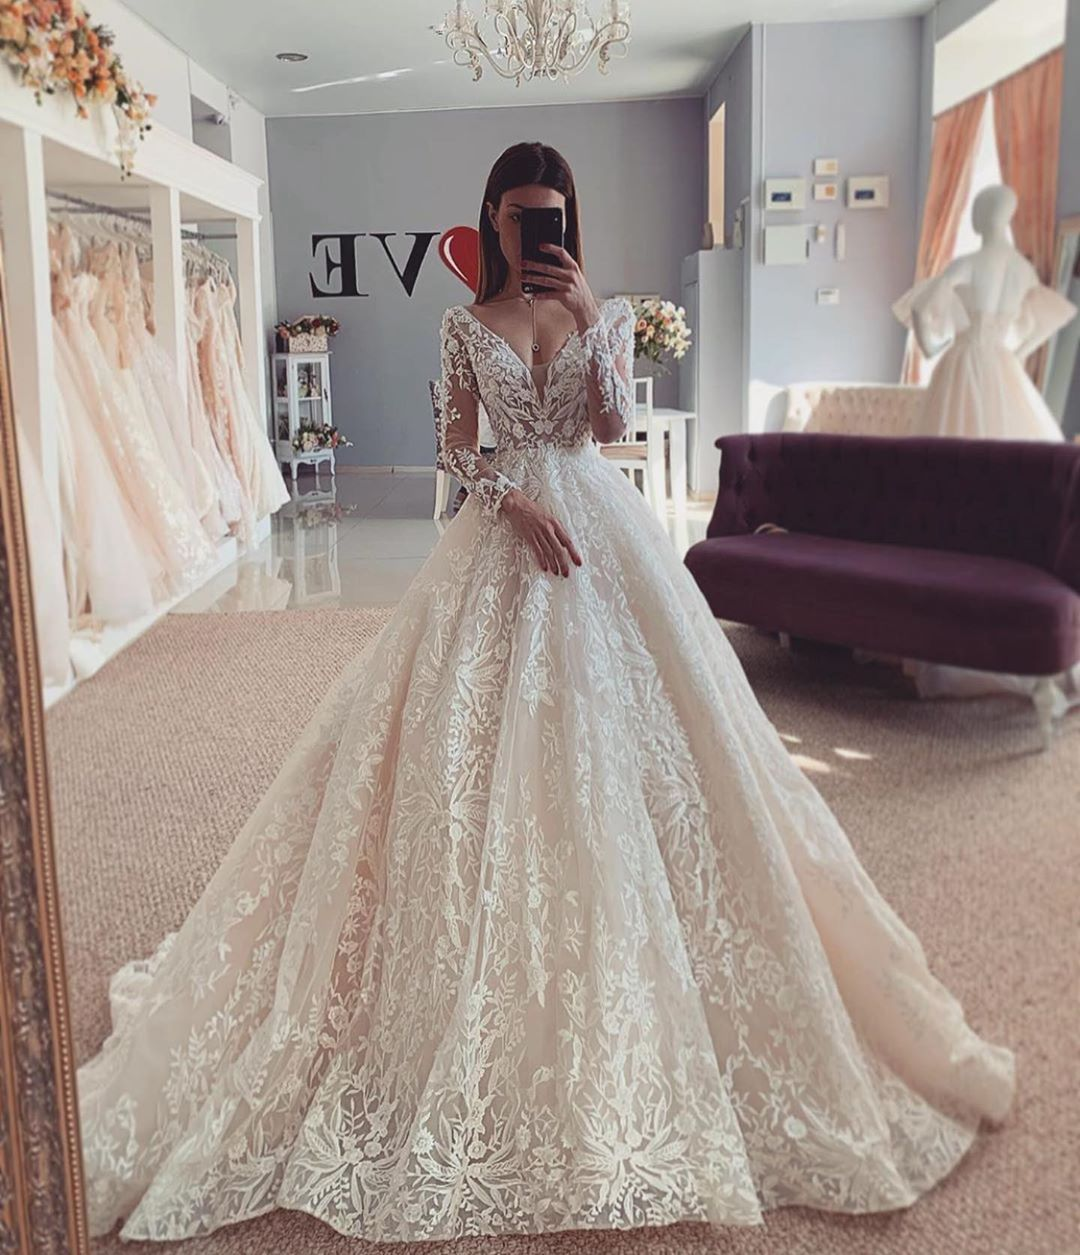 Just Wedding Bells On Instagram Which One 1 2 3 4 Or 5 Dresses By Salonlove1 Ball Gowns Wedding Online Wedding Dress Gorgeous Wedding Dress [ 1255 x 1080 Pixel ]